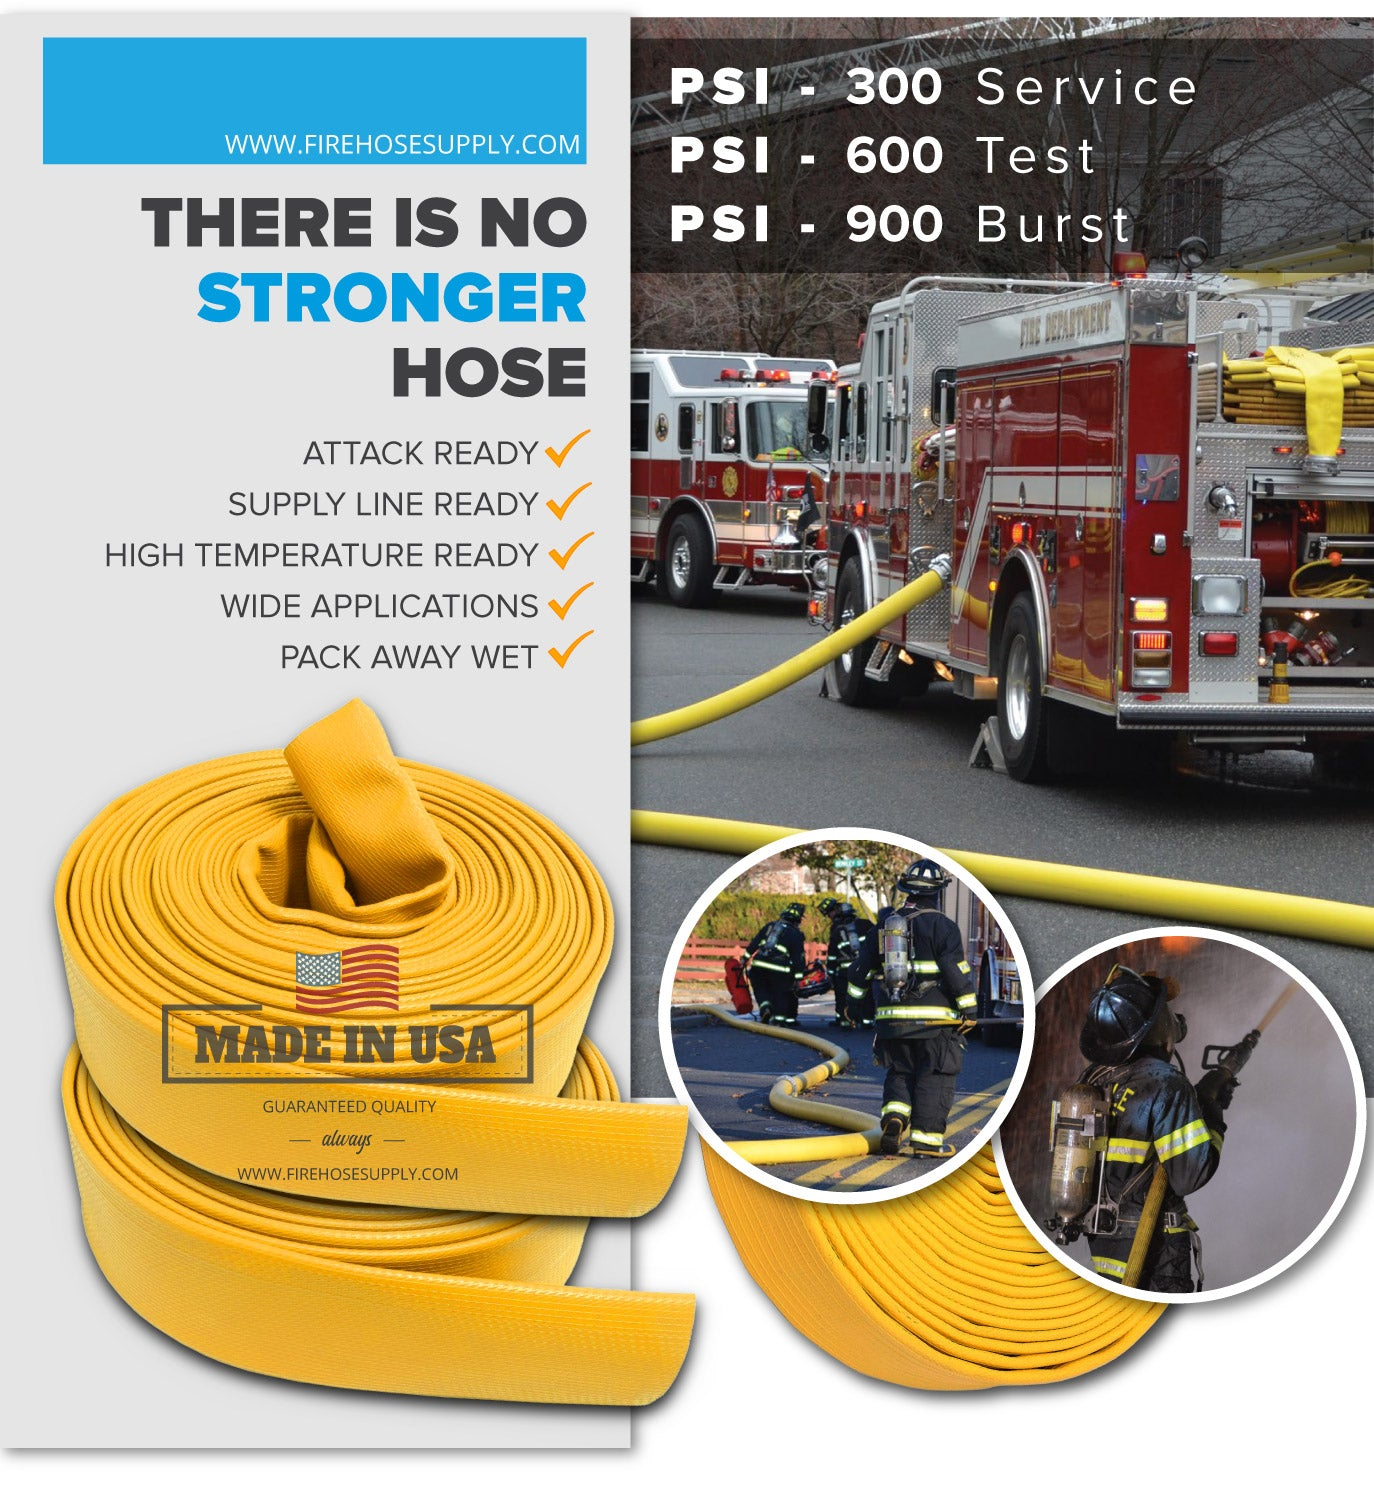 1.5 Inch Rubber Fire Hose Material Only Supply And Attack Ready Firefighter Yellow 600 PSI Test